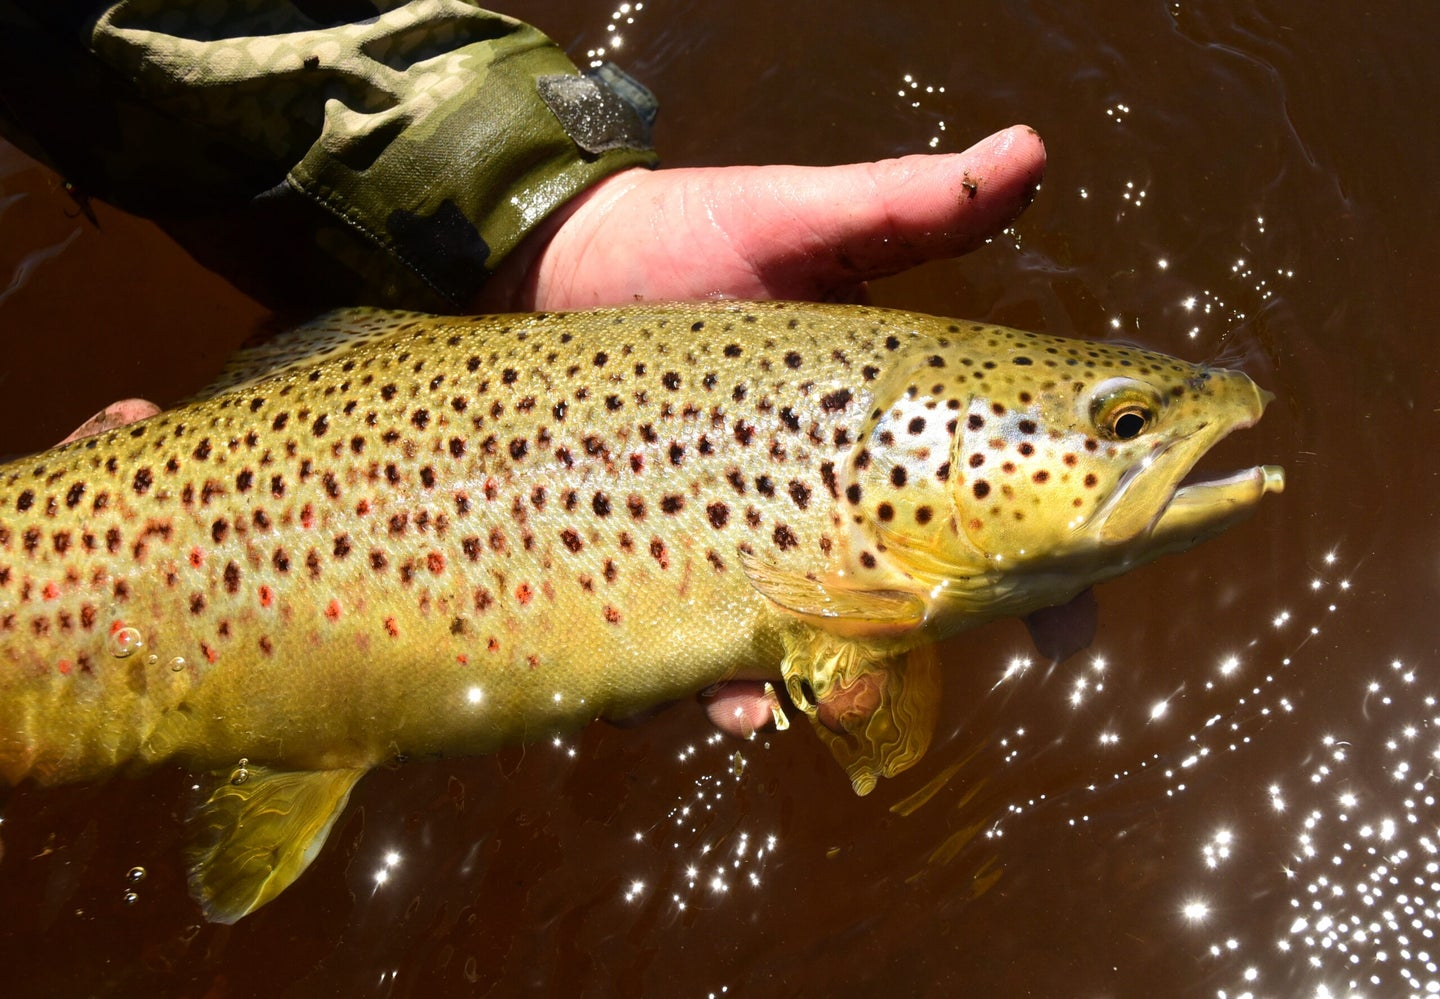 Brown trout caught in a Western stream.